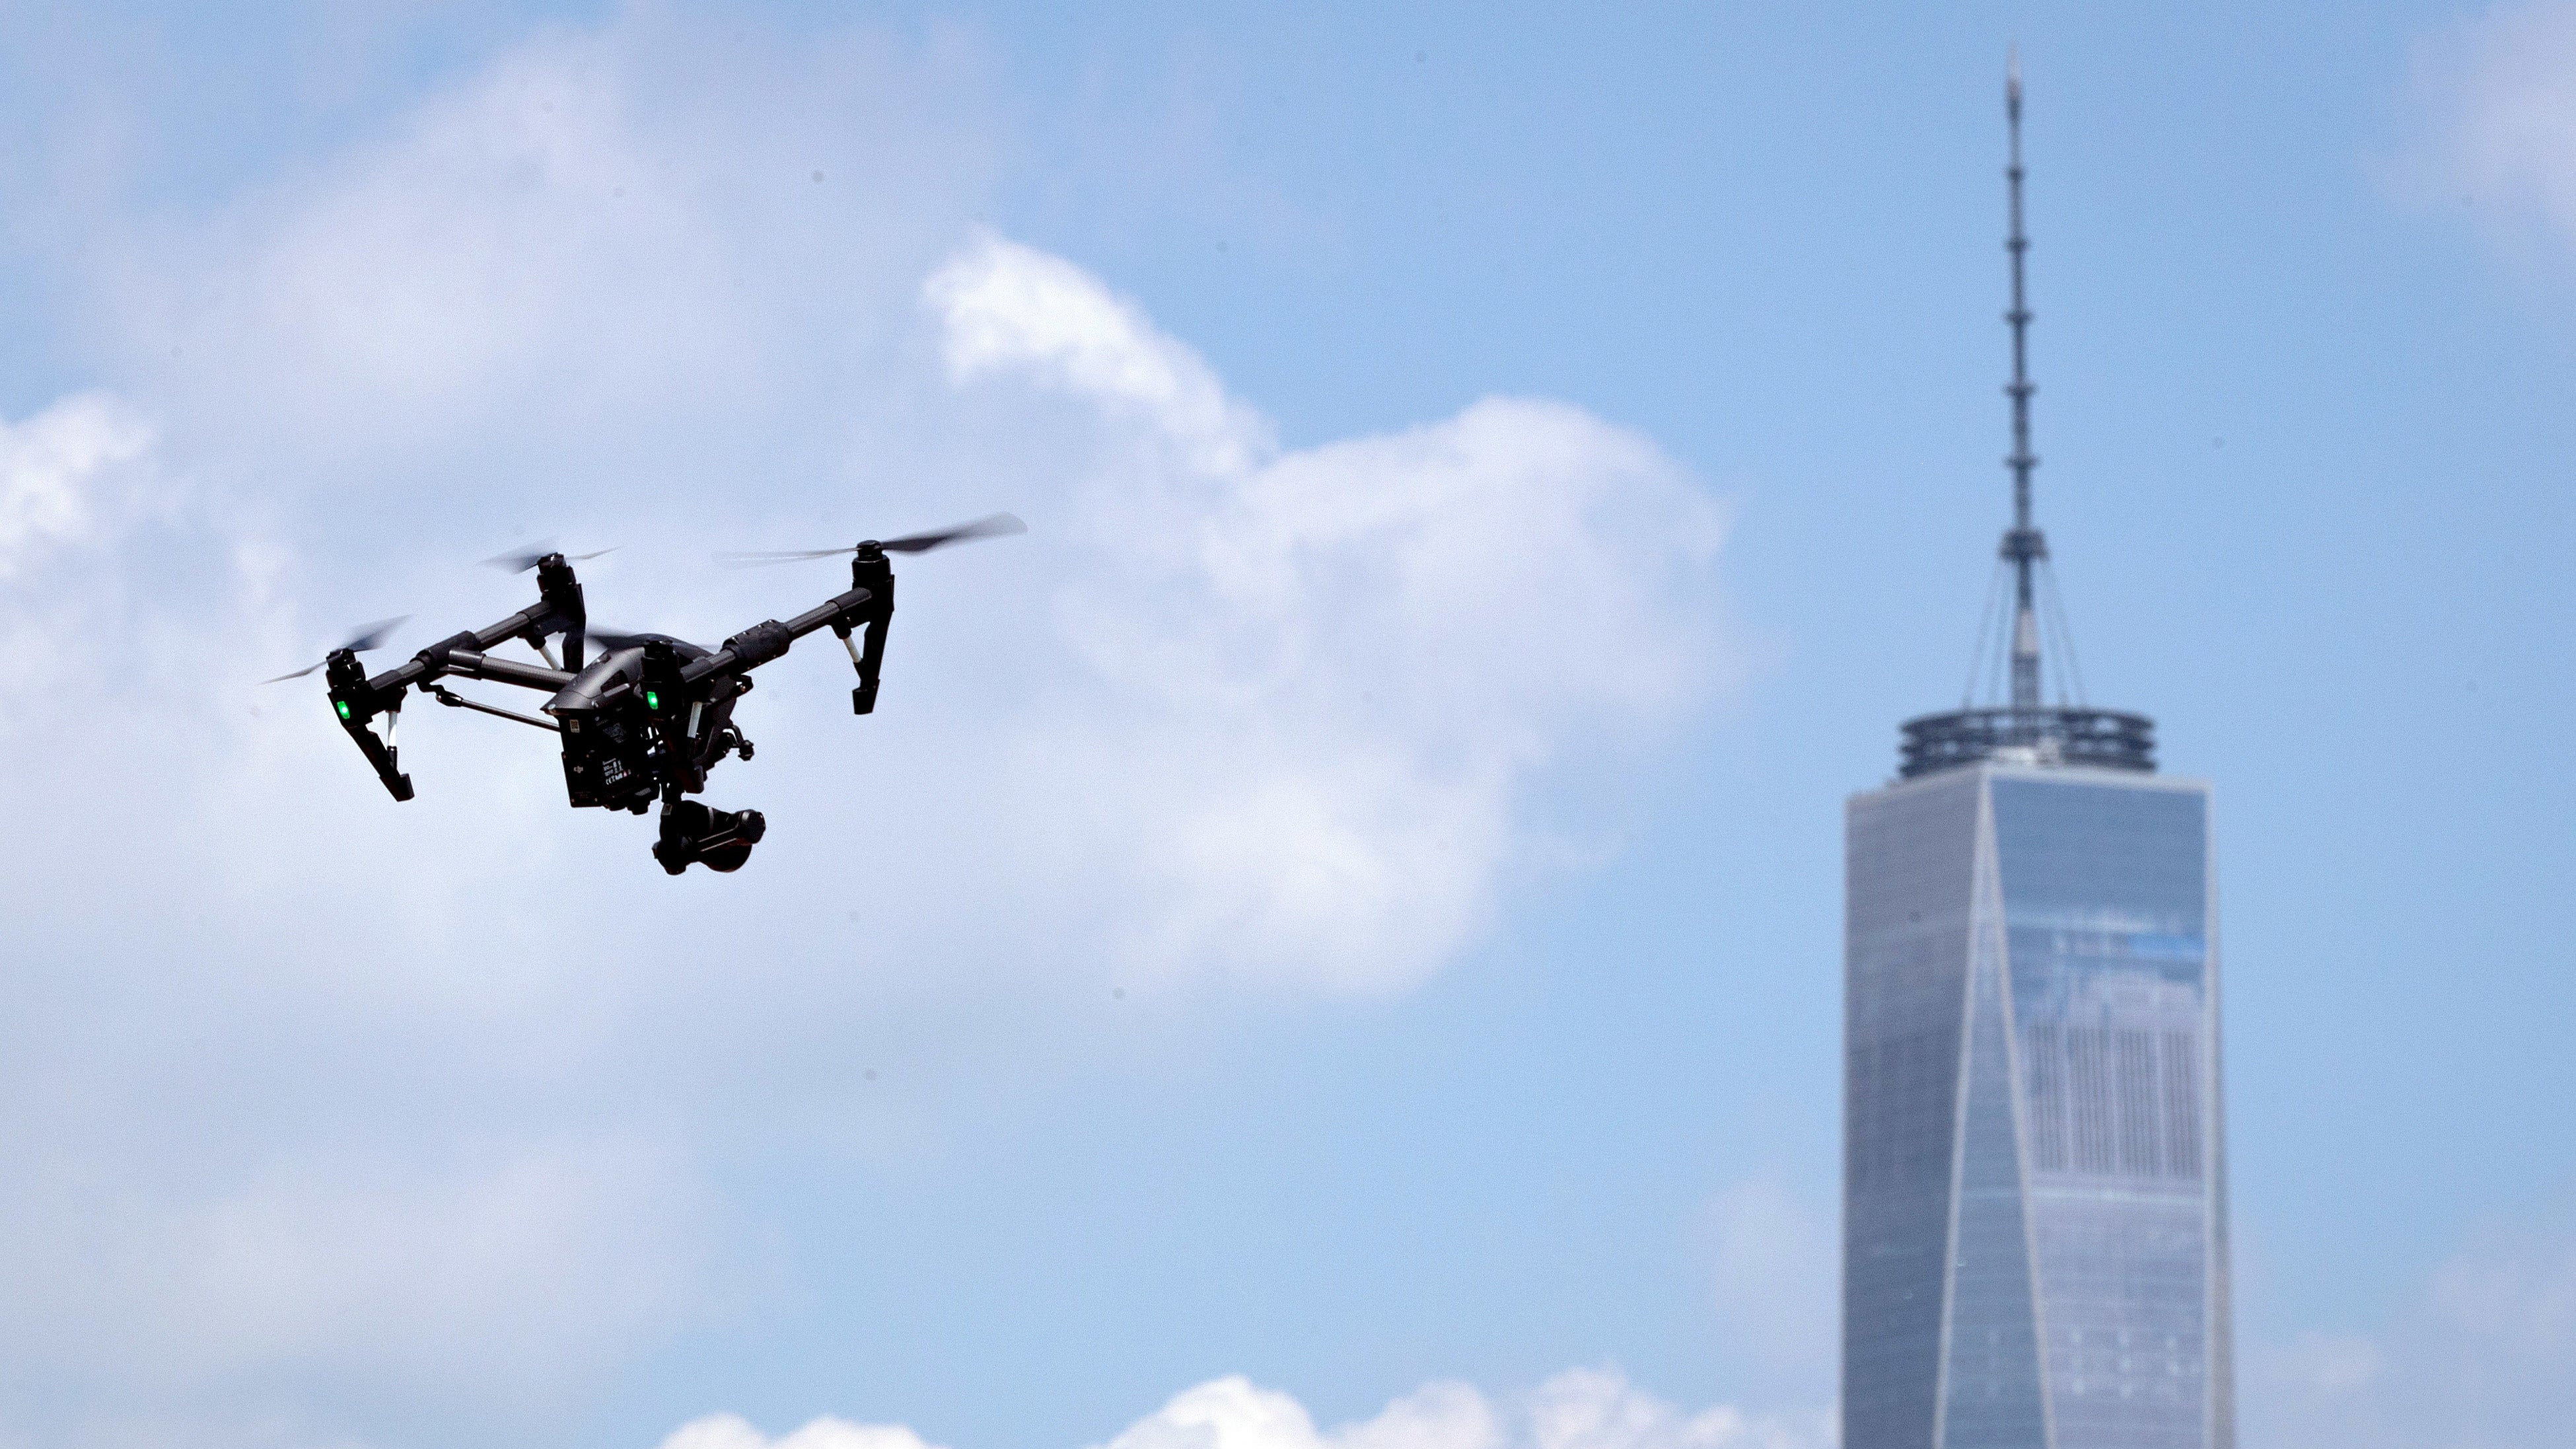 Oh Cool, The NYPD Now Has A Fleet Of Drones For 'Tactical Operations'